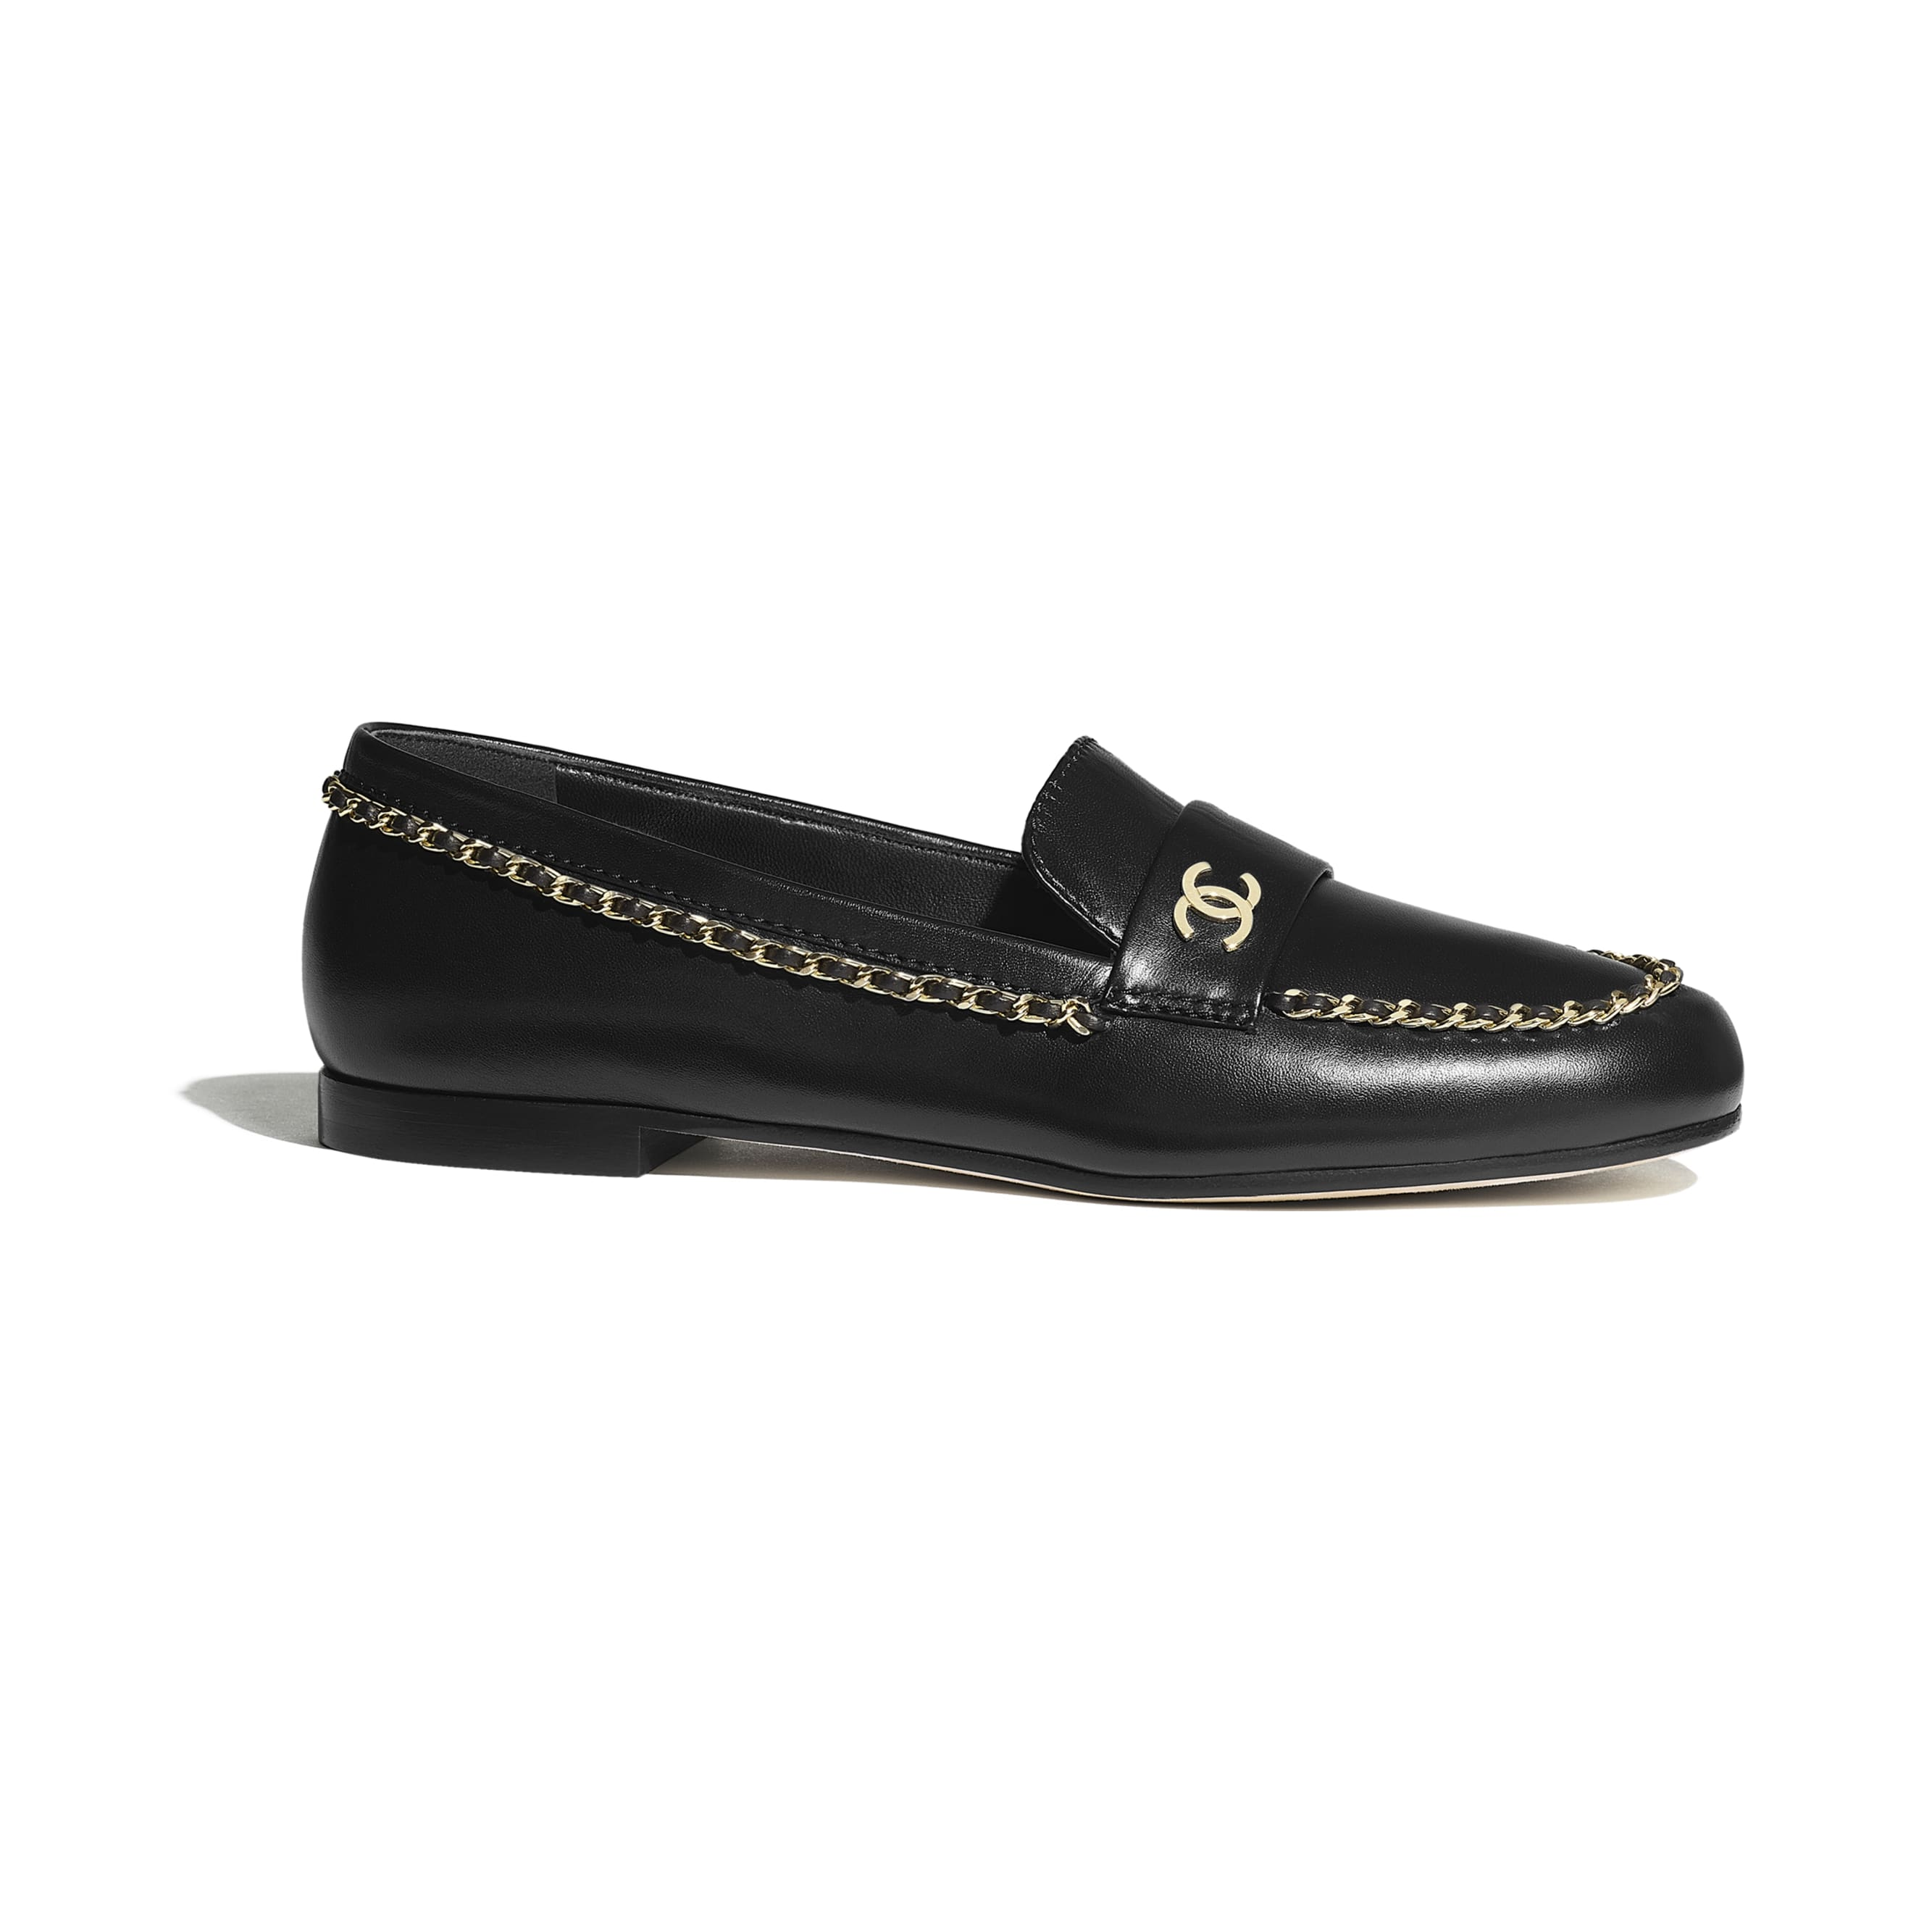 Loafers - Black - Lambskin - Default view - see standard sized version